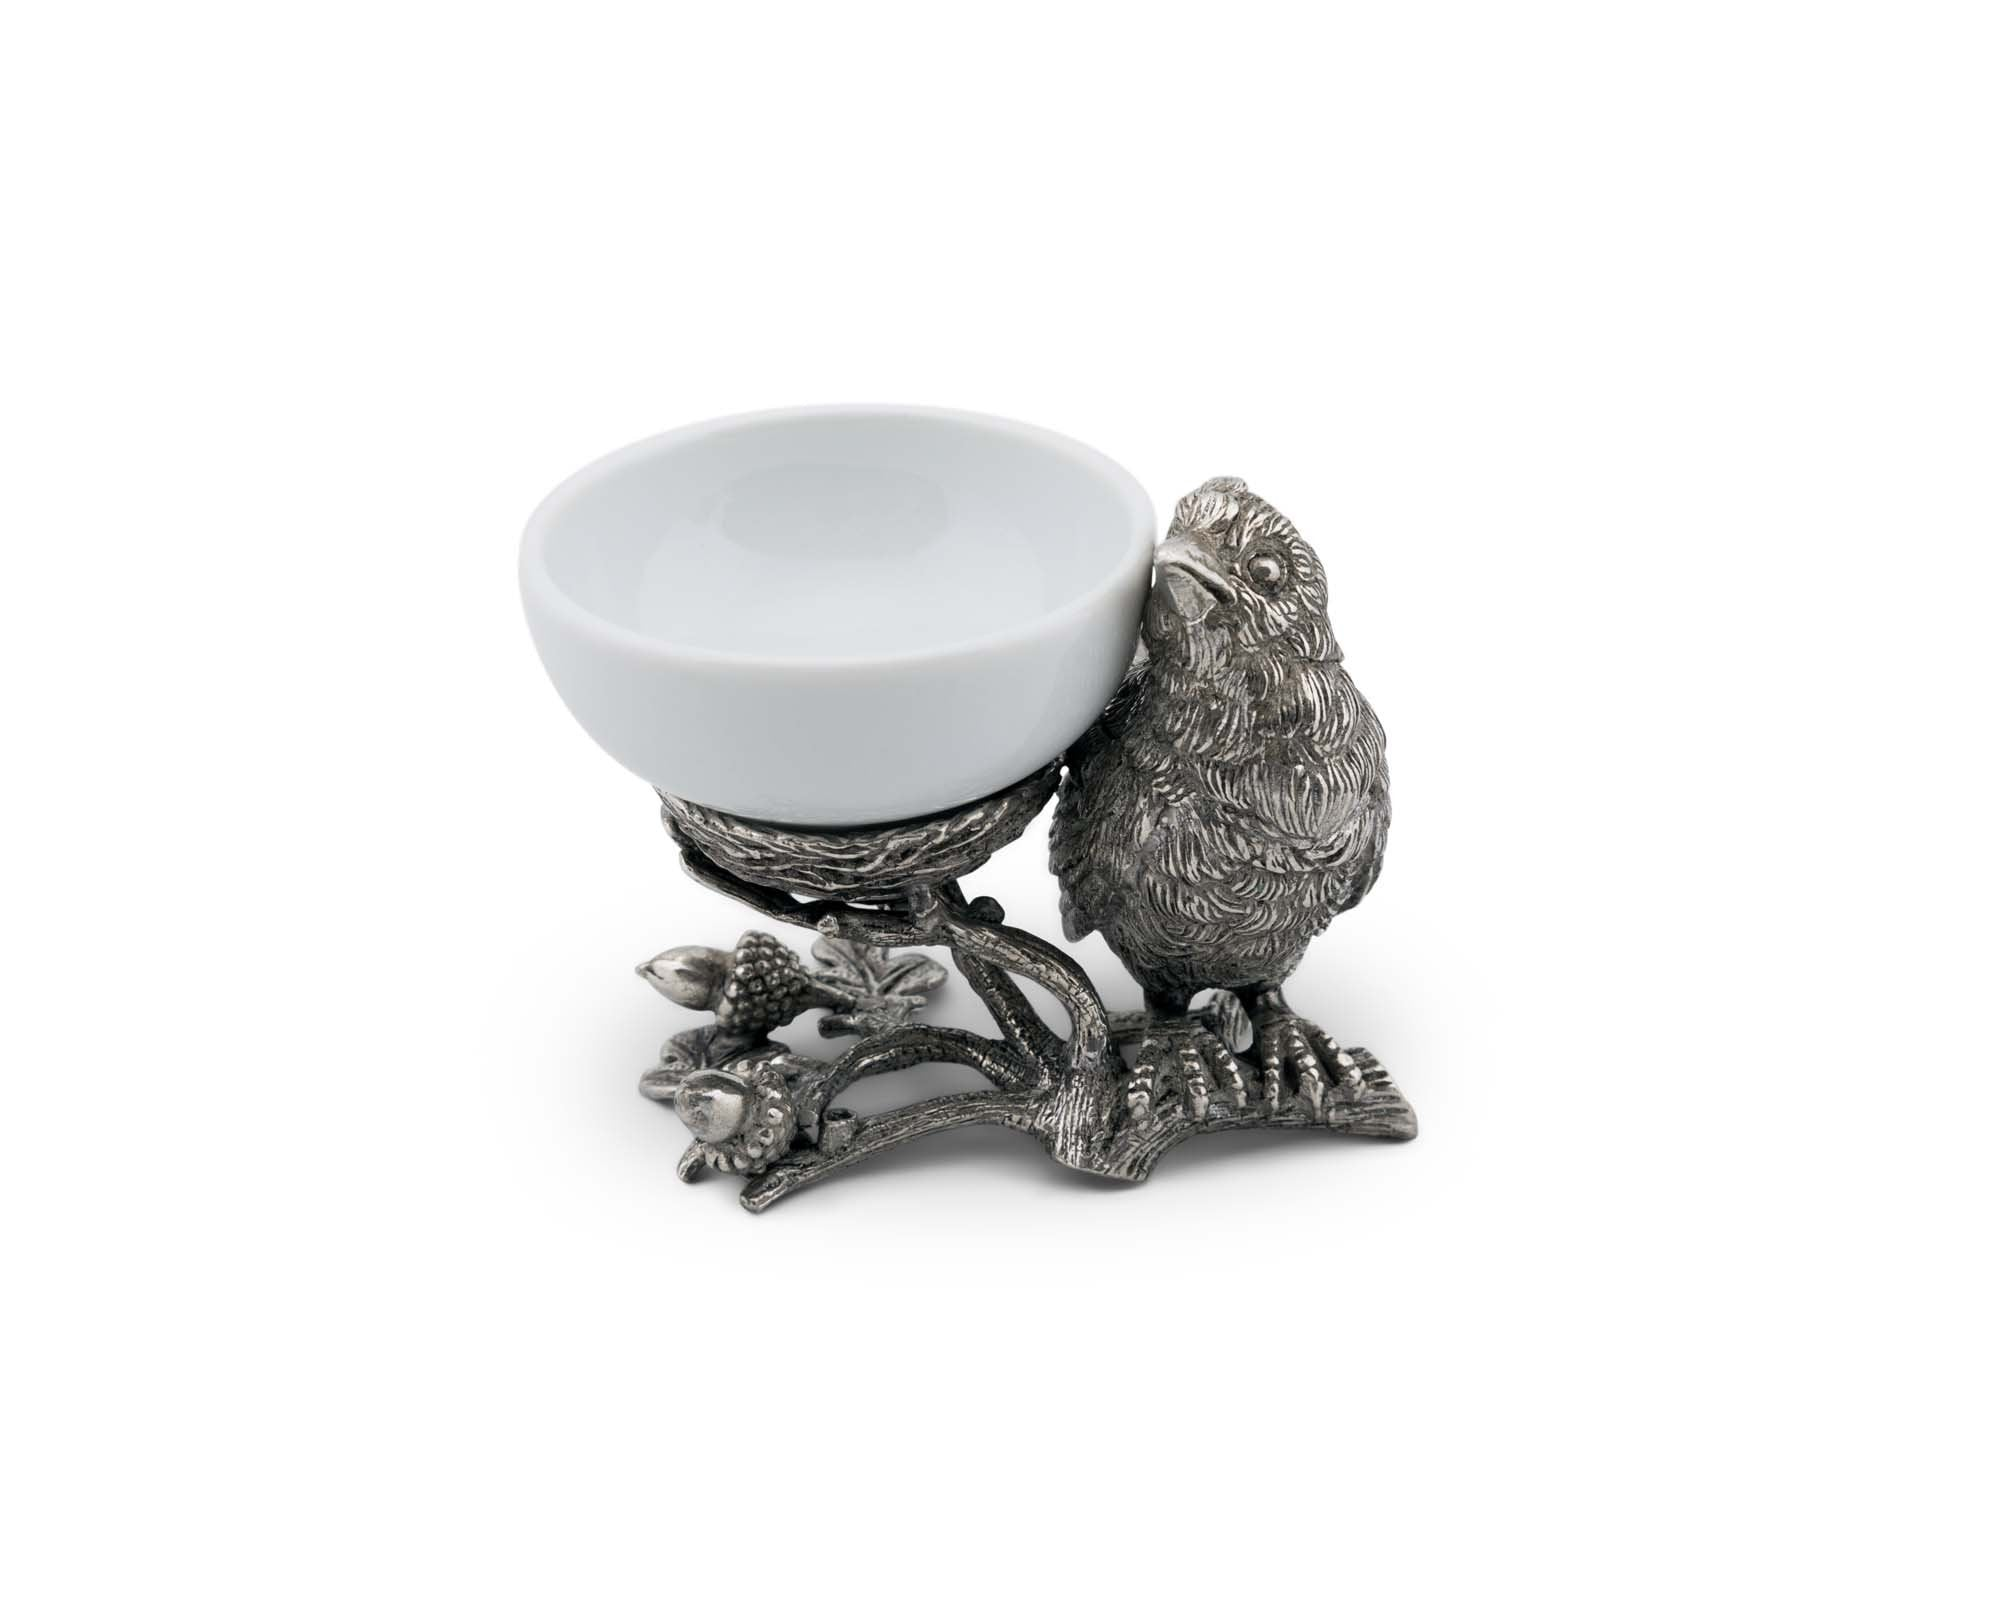 Song Bird Salt Cellar